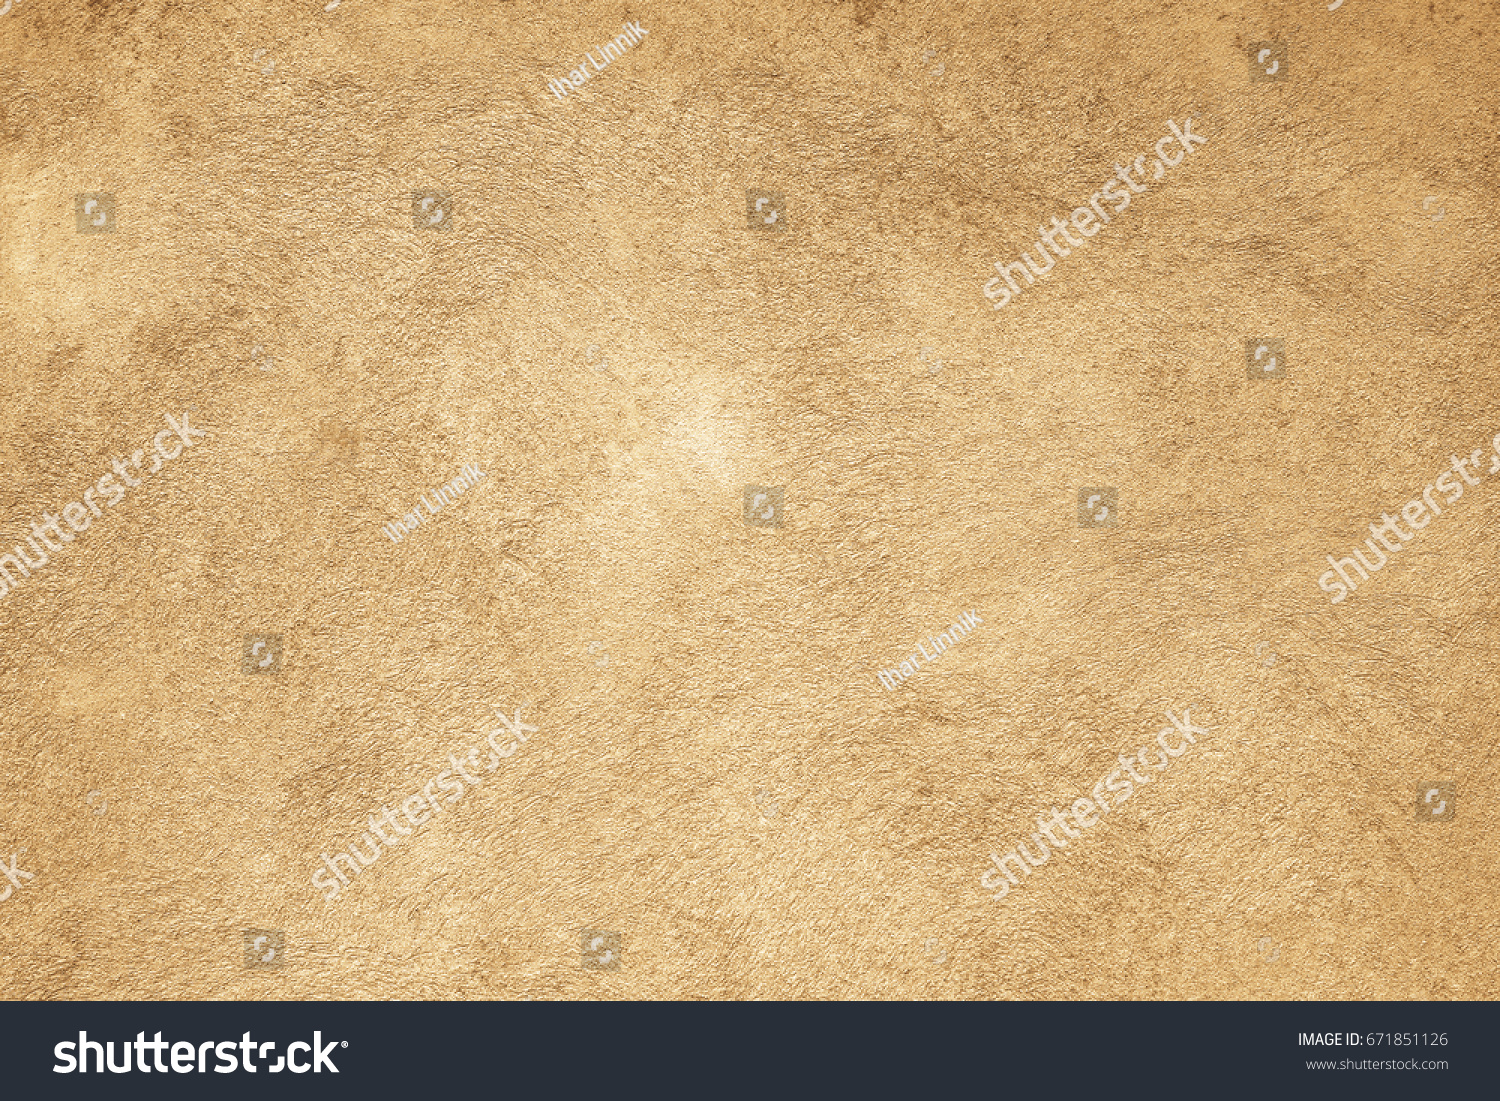 Decorative Wall Texture Brown Cement Plaster Stock Photo & Image ...